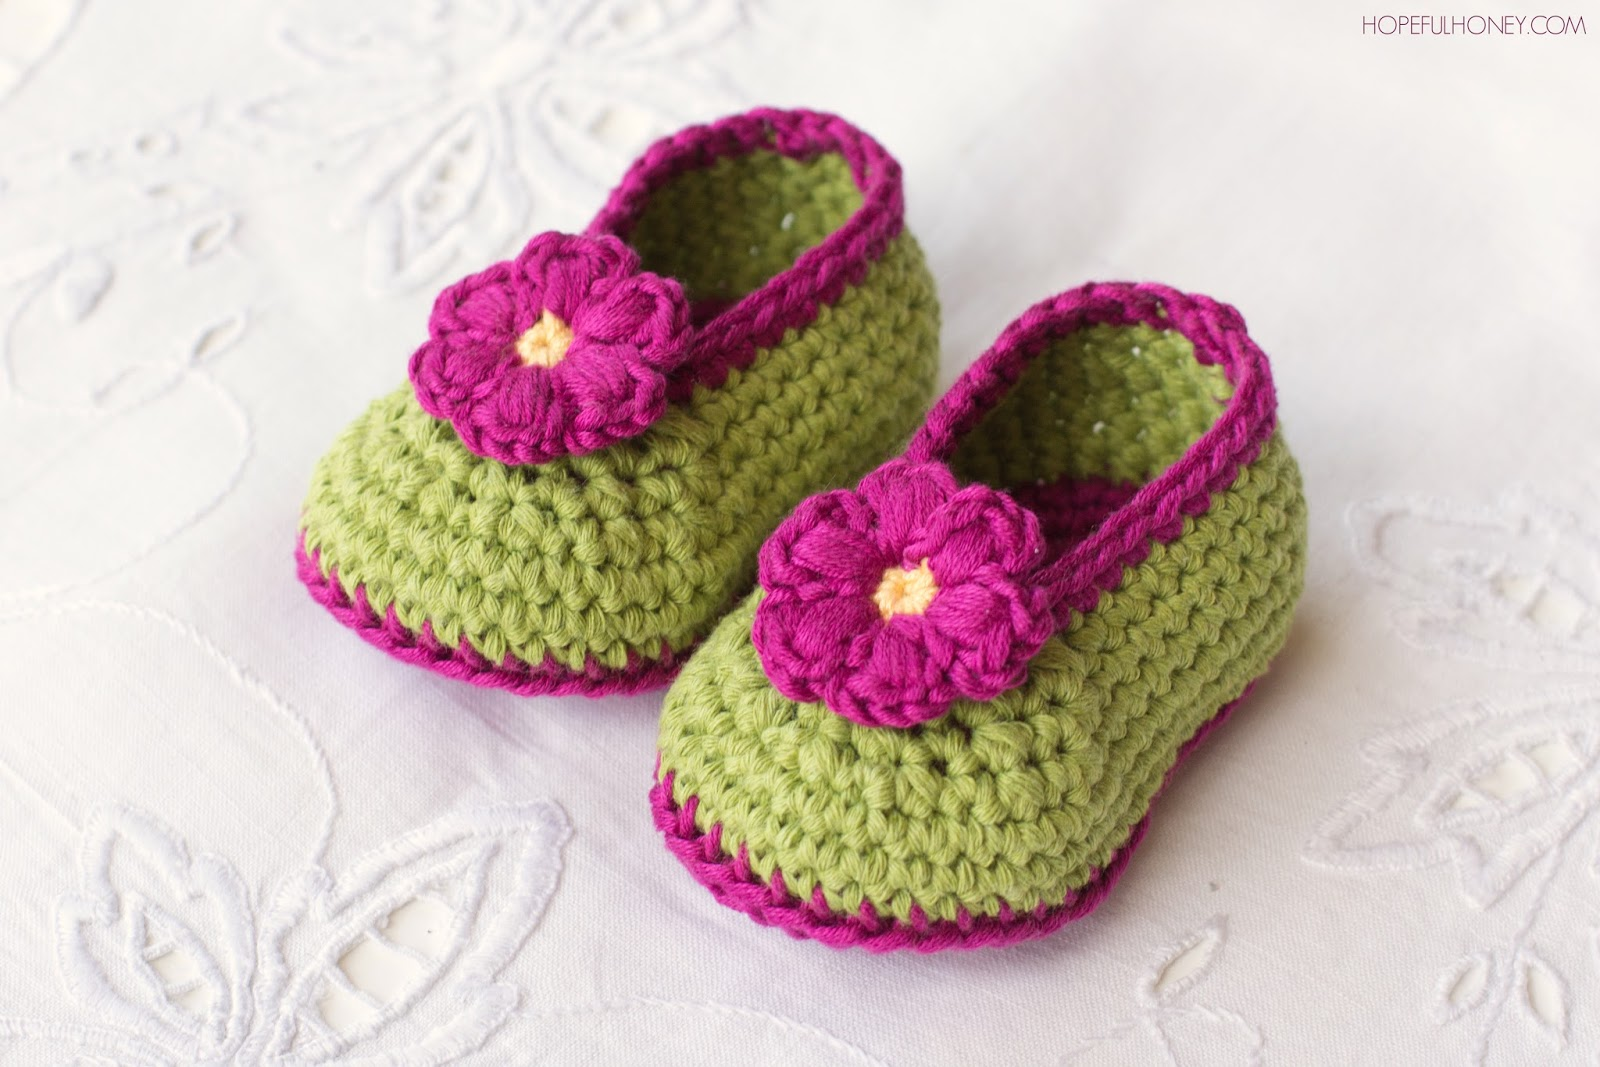 Crochet Pattern Easy Baby Booties : Hopeful Honey Craft, Crochet, Create: Fairy Blossom Baby ...